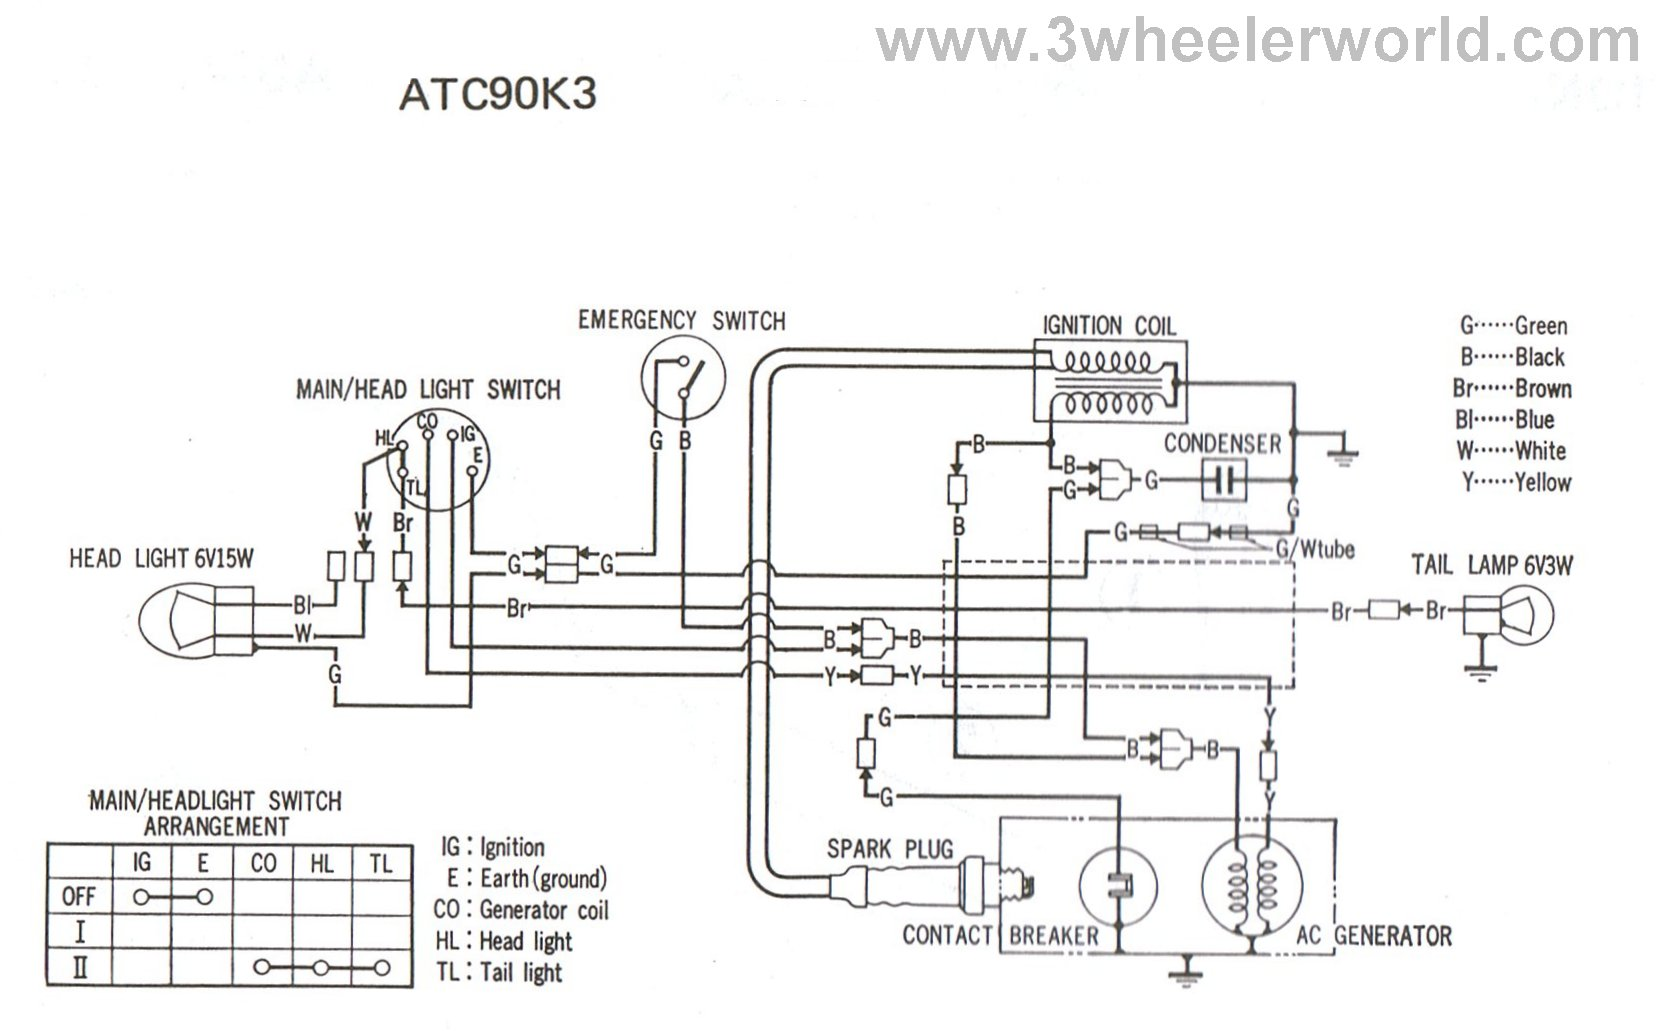 2006 polaris sportsman 500 wiring diagram 1995 polaris scrambler 400 4x4 wiring diagram - wiring diagram 2010 polaris sportsman 500 wiring diagram